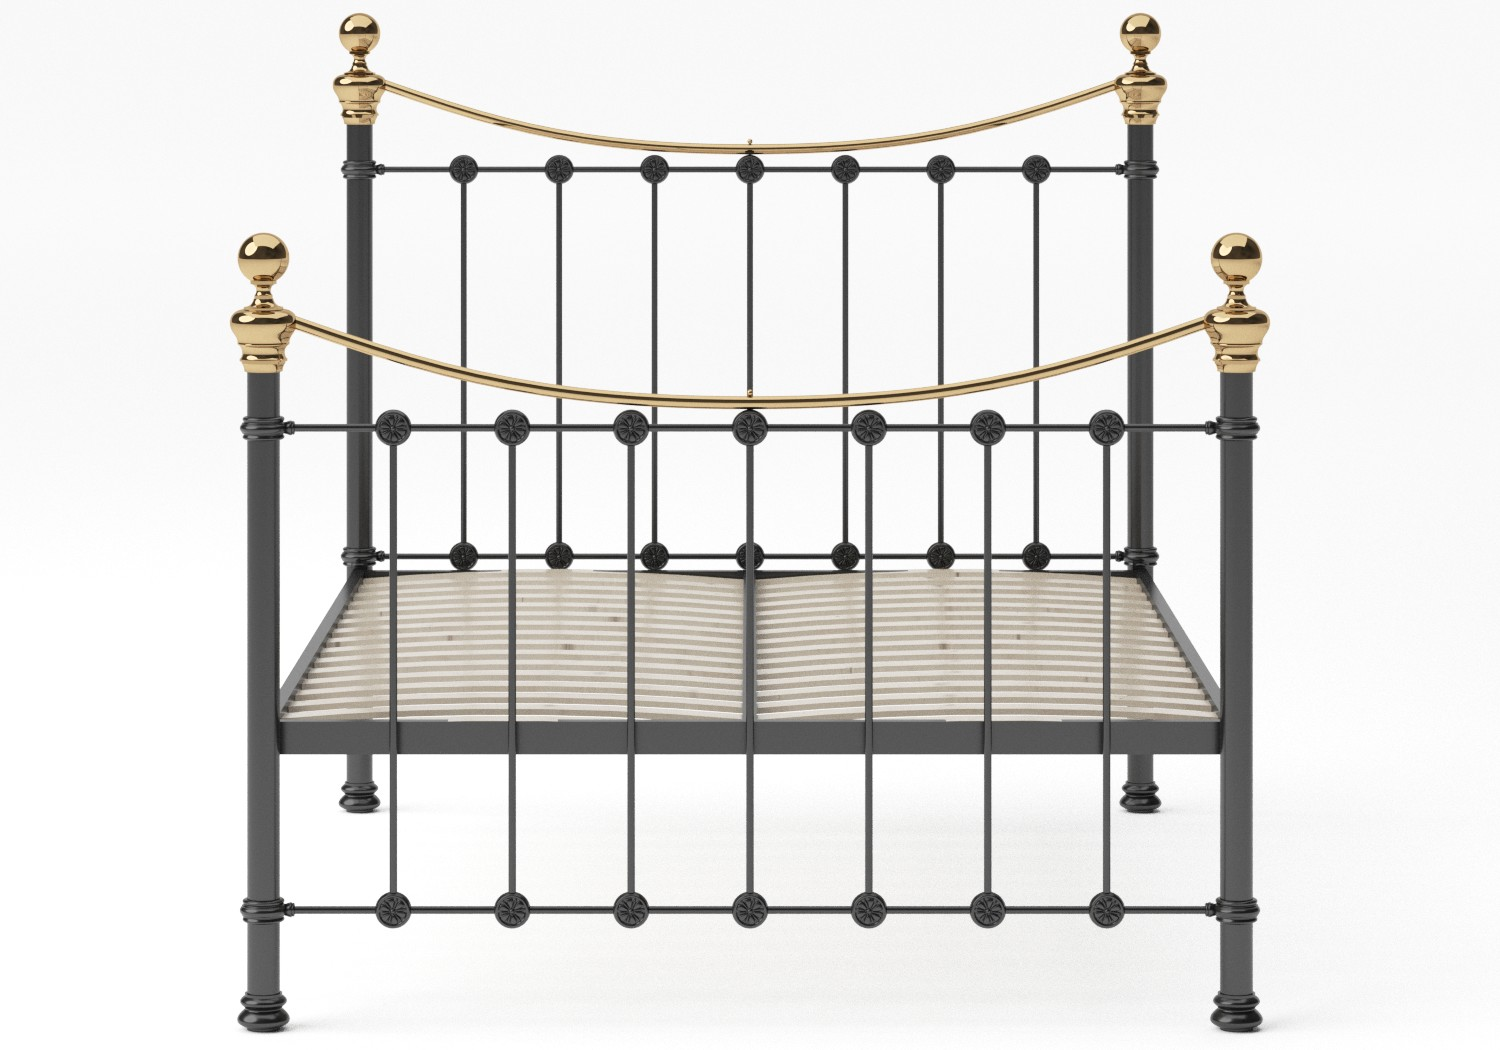 Selkirk Iron/Metal Bed in Satin Black with Brass details shown with slatted frame